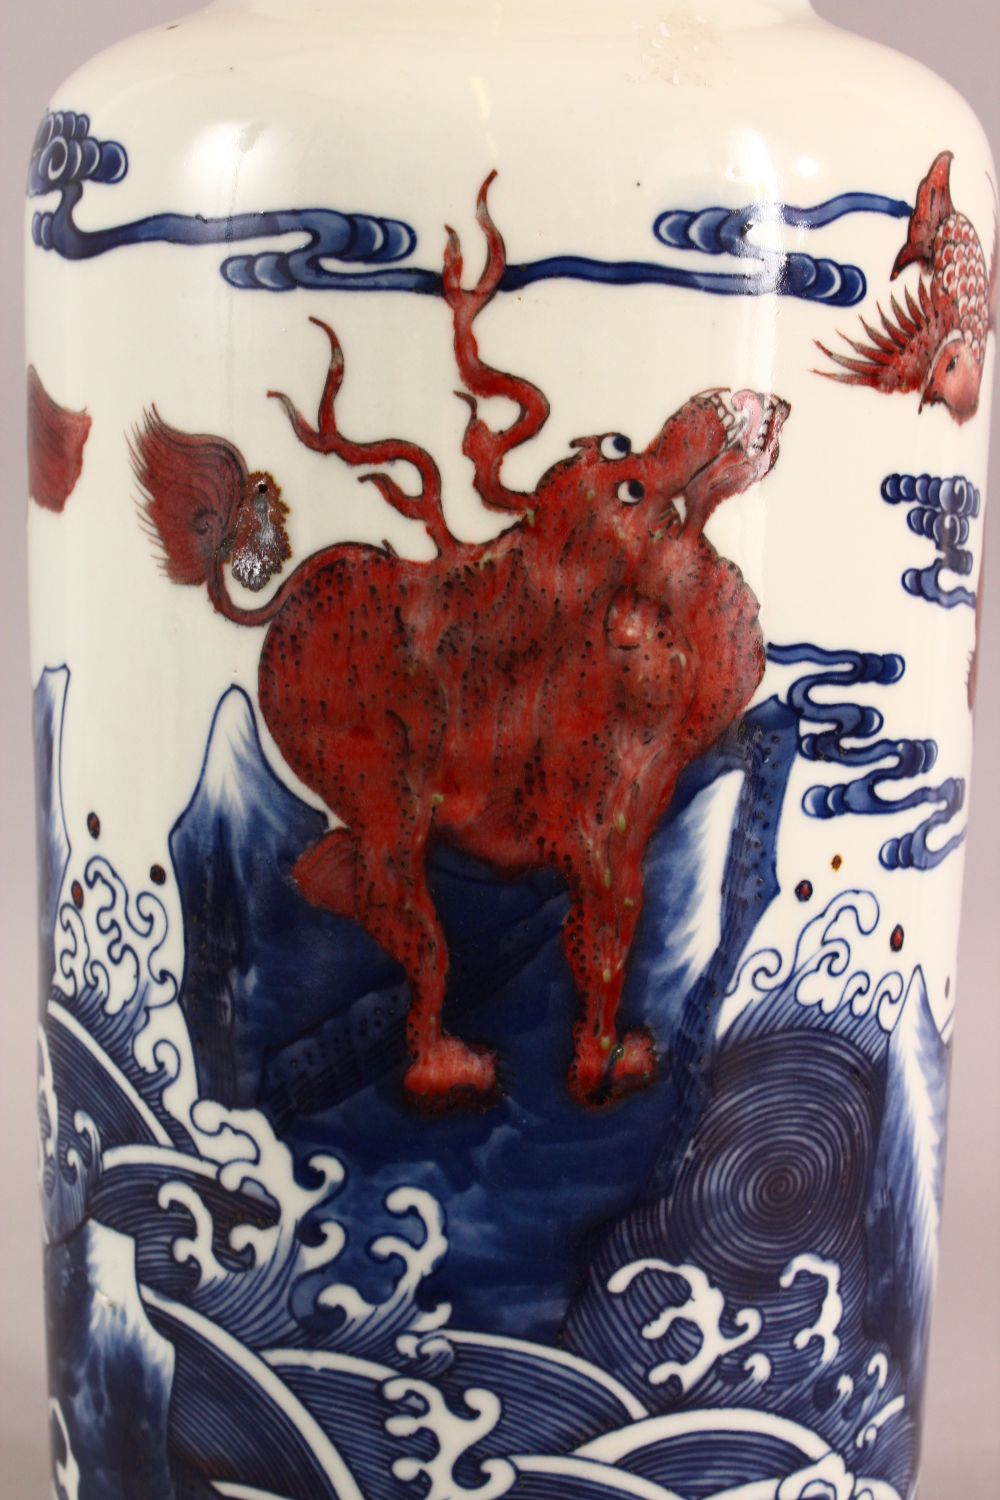 A CHINESE IRON RED, BLUE AND WHITE VASE, the body painted with mythical creatures amongst stylised - Image 2 of 7